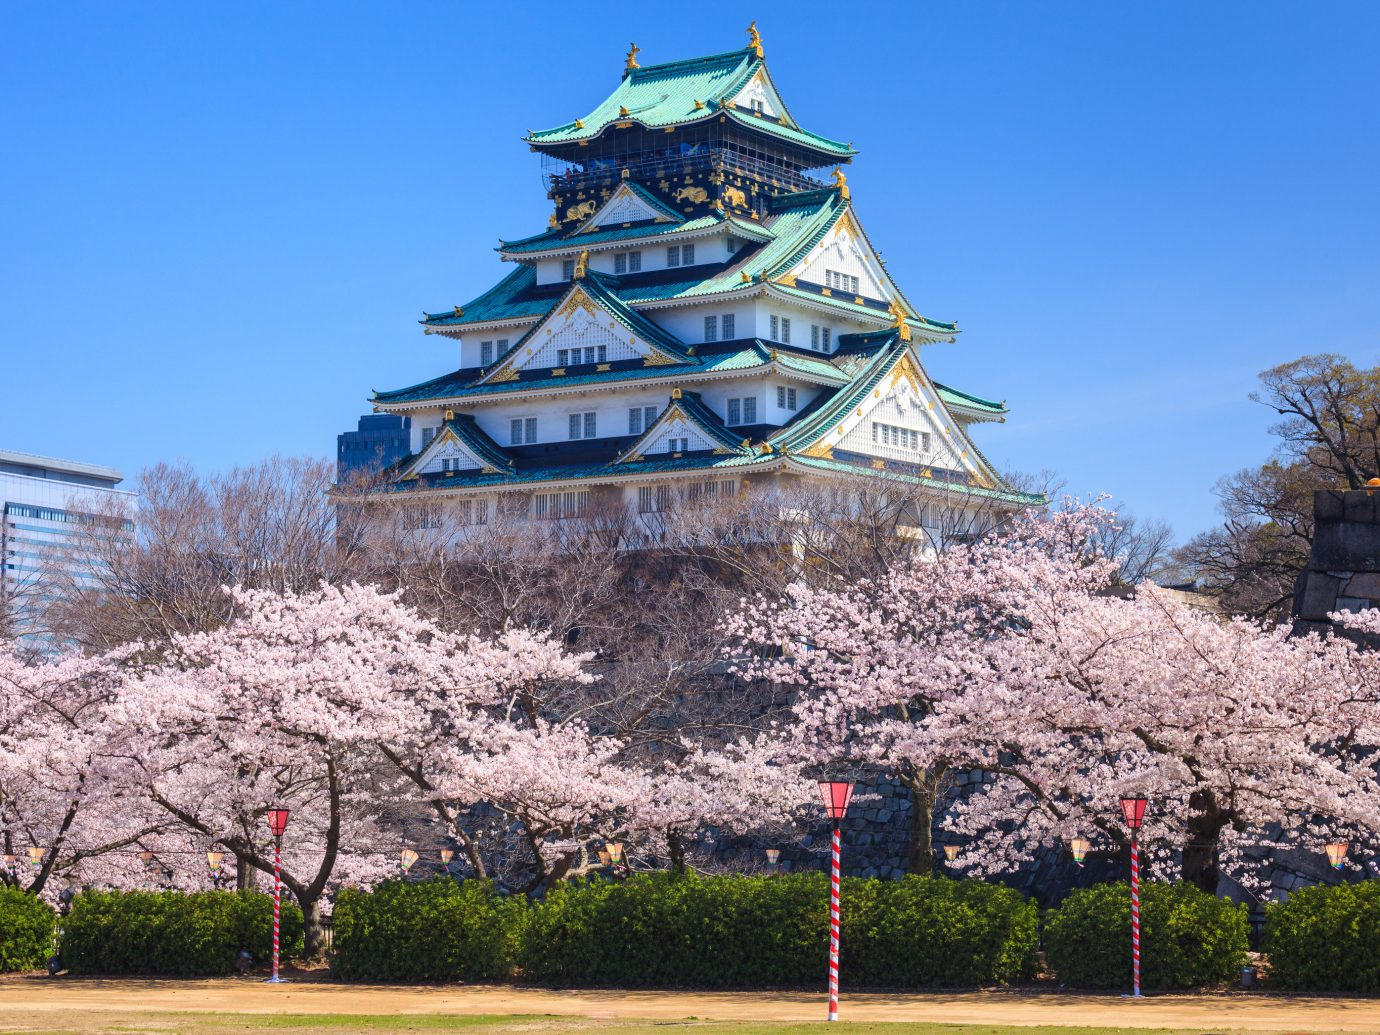 Japan Trip Ideas landmark sky flower plant tourist attraction tree cherry blossom spring building blossom tourism